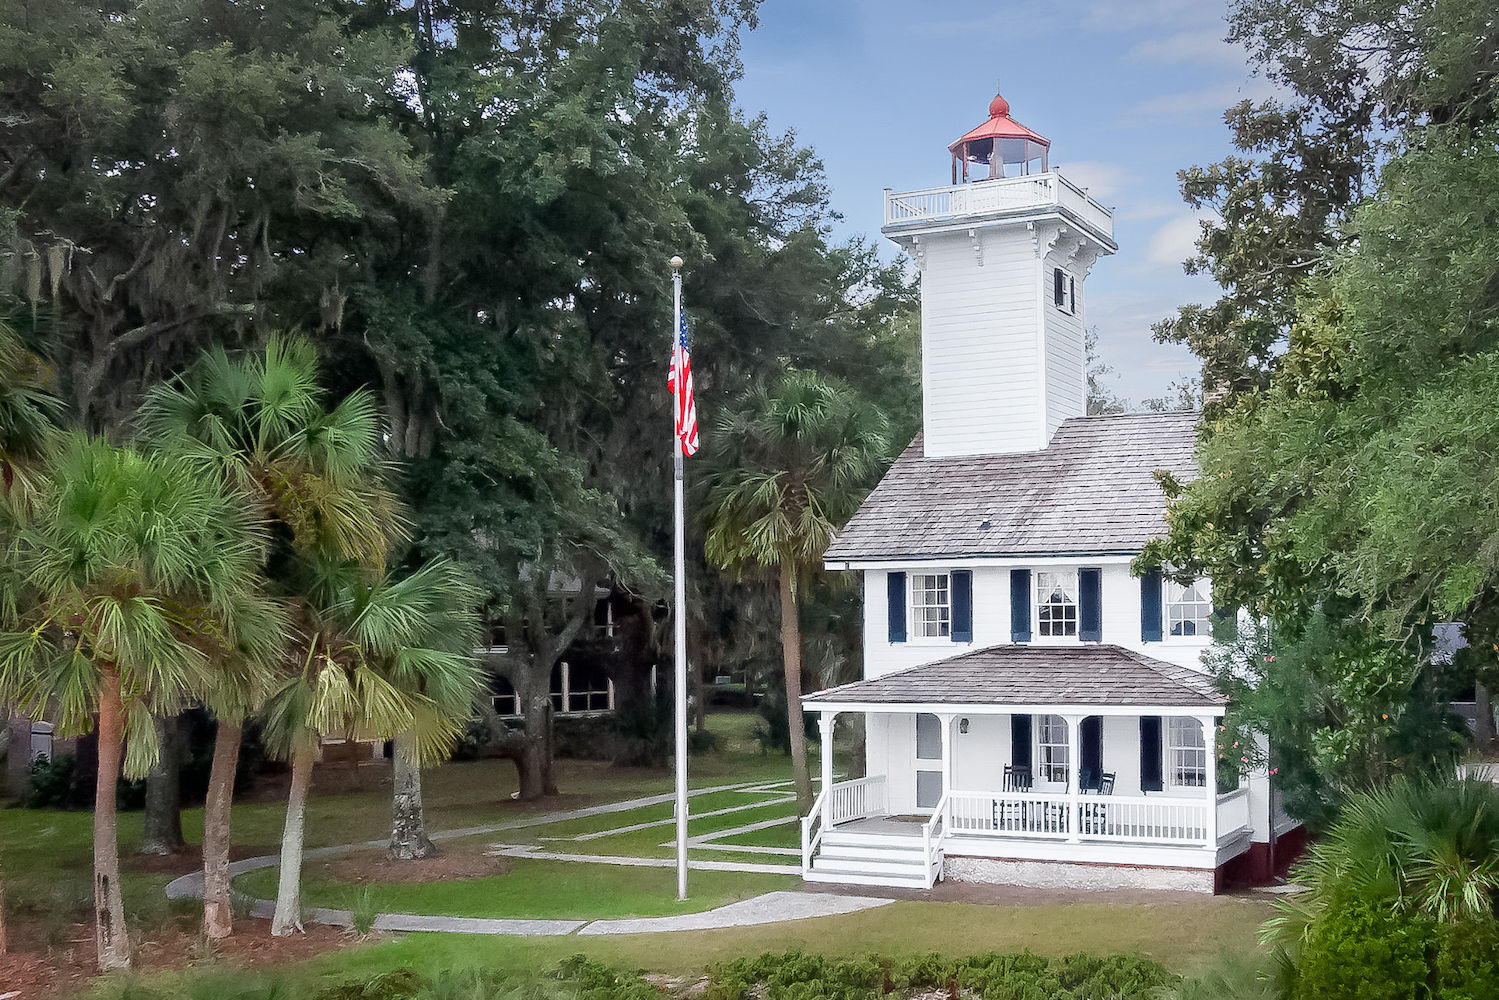 Stay the Night at This Adorable Lighthouse and You Might Meet Its 'Friendly Ghost'